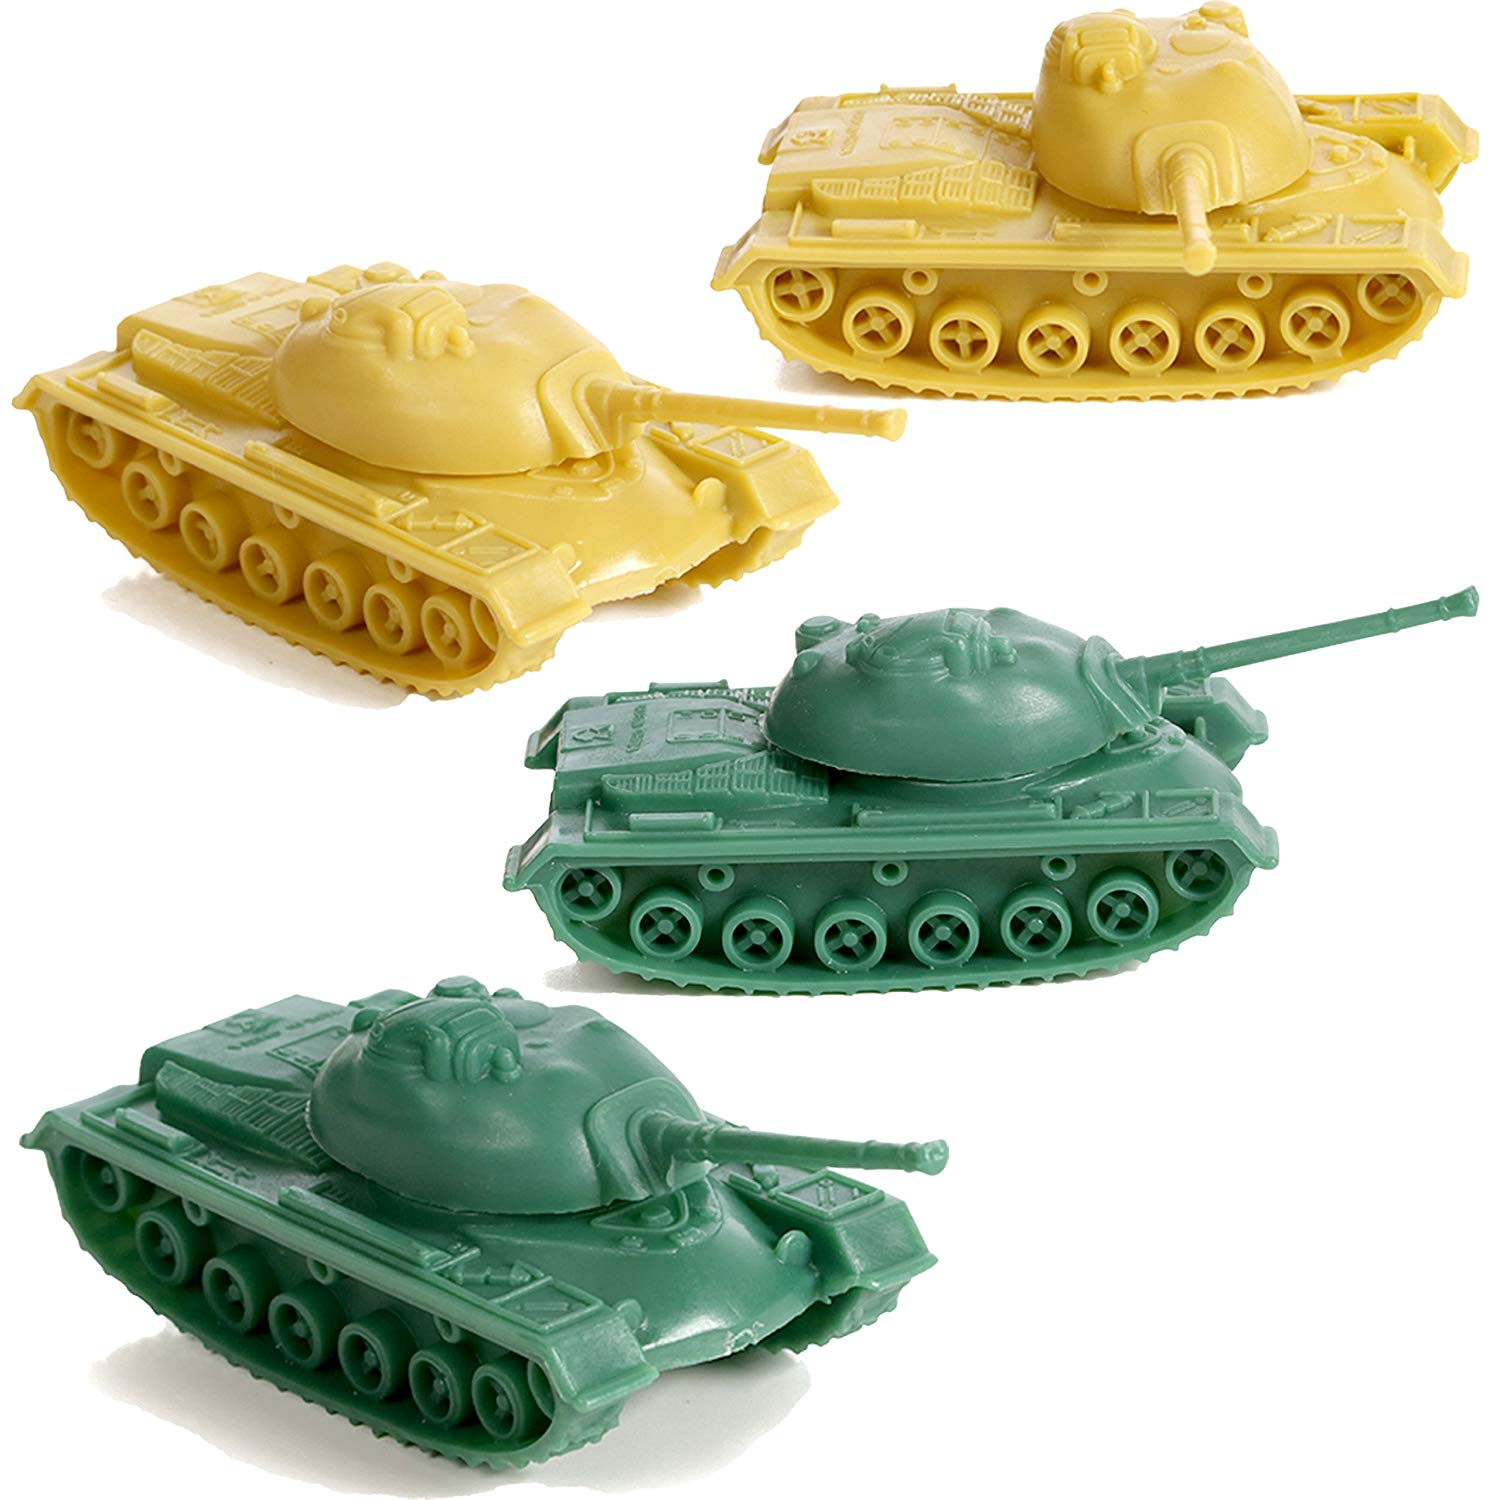 IQ Toys 100 Piece Set of Military Army Accessory Set, War Tanks, Camp Tents, Jeeps Plus